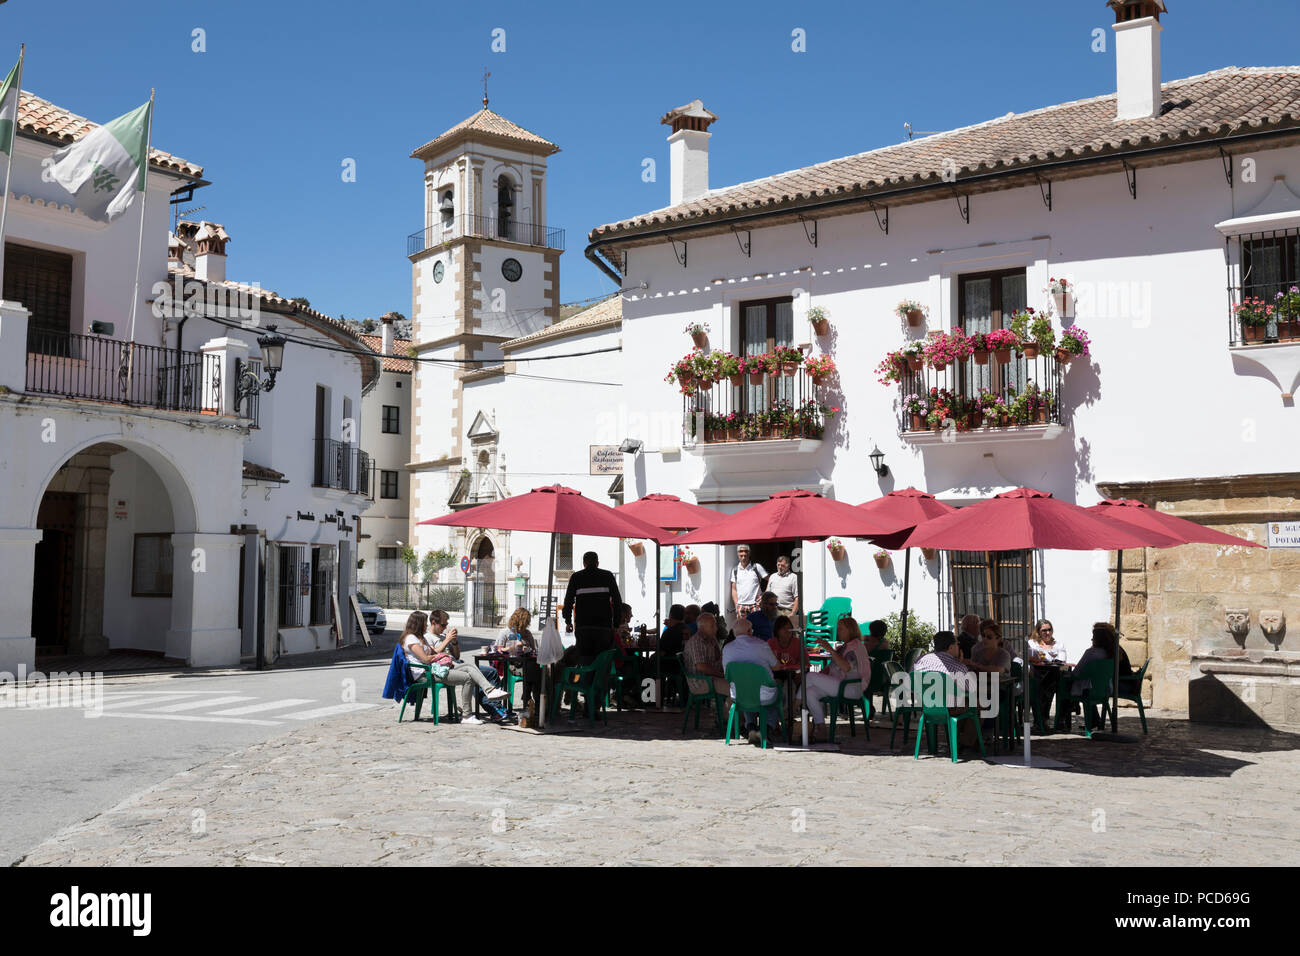 Cafe in town square, Grazalema, Sierra de Grazalema Natural Park, Andalucia, Spain, Europe - Stock Image